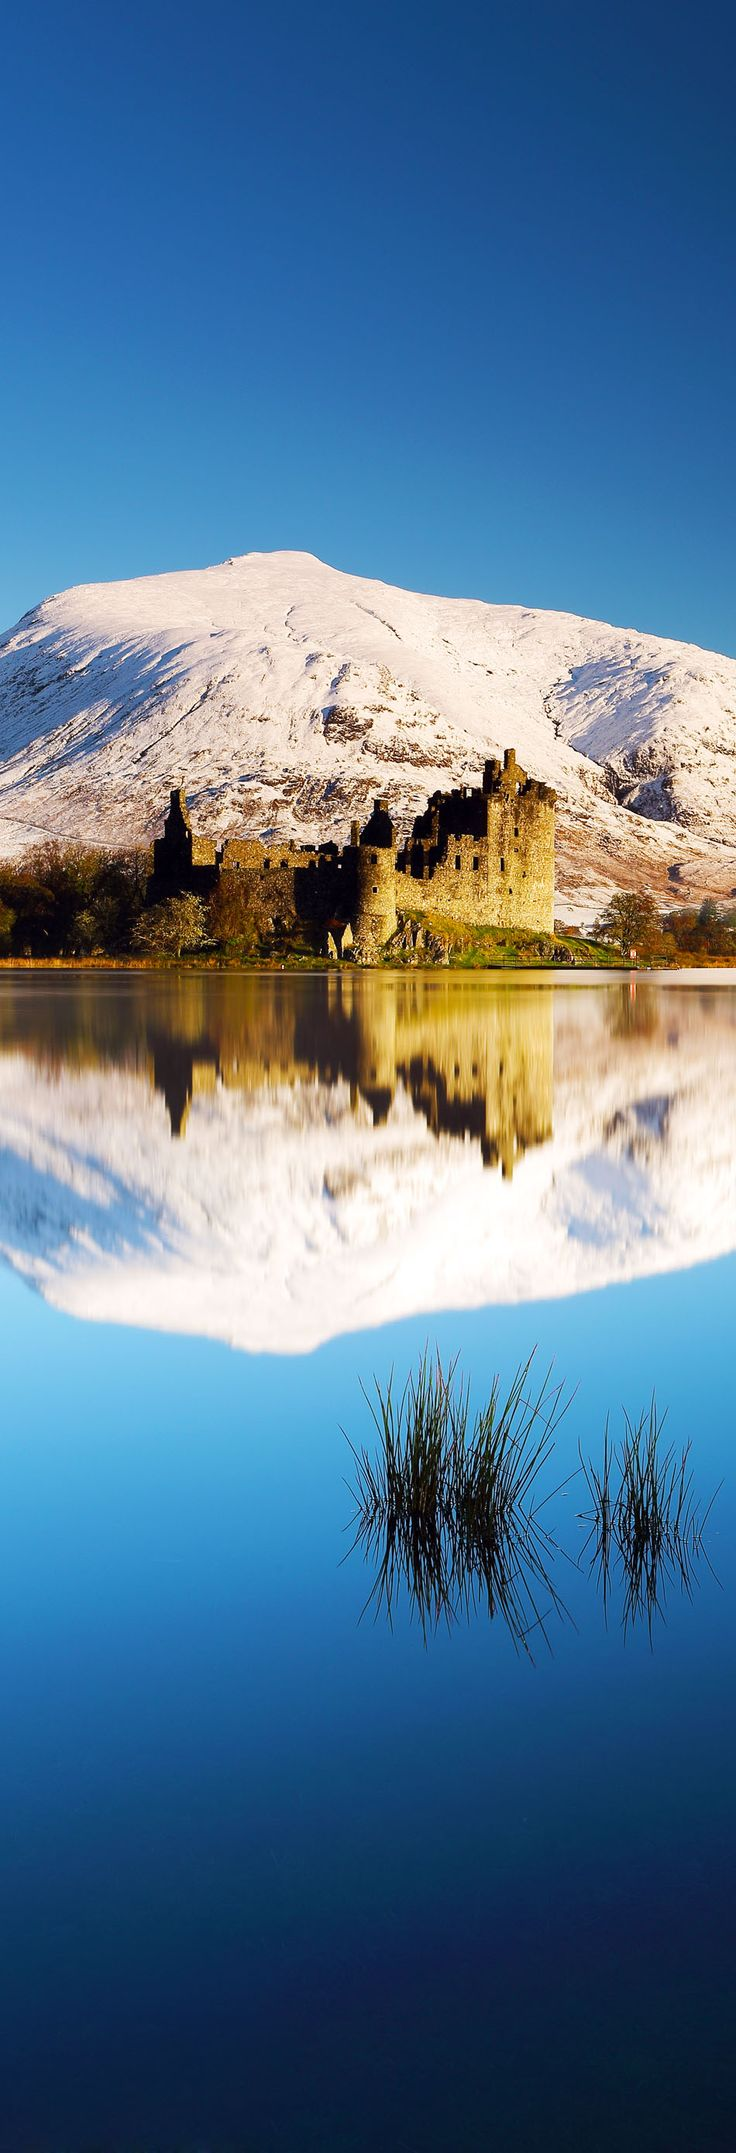 Kilchurn Castle and snow covered mountains reflecting off Loch Awe on a beautiful crisp morning. Dalmally, Scotland.   |   The 20 Most Stunning Fairytale Castles in Winter